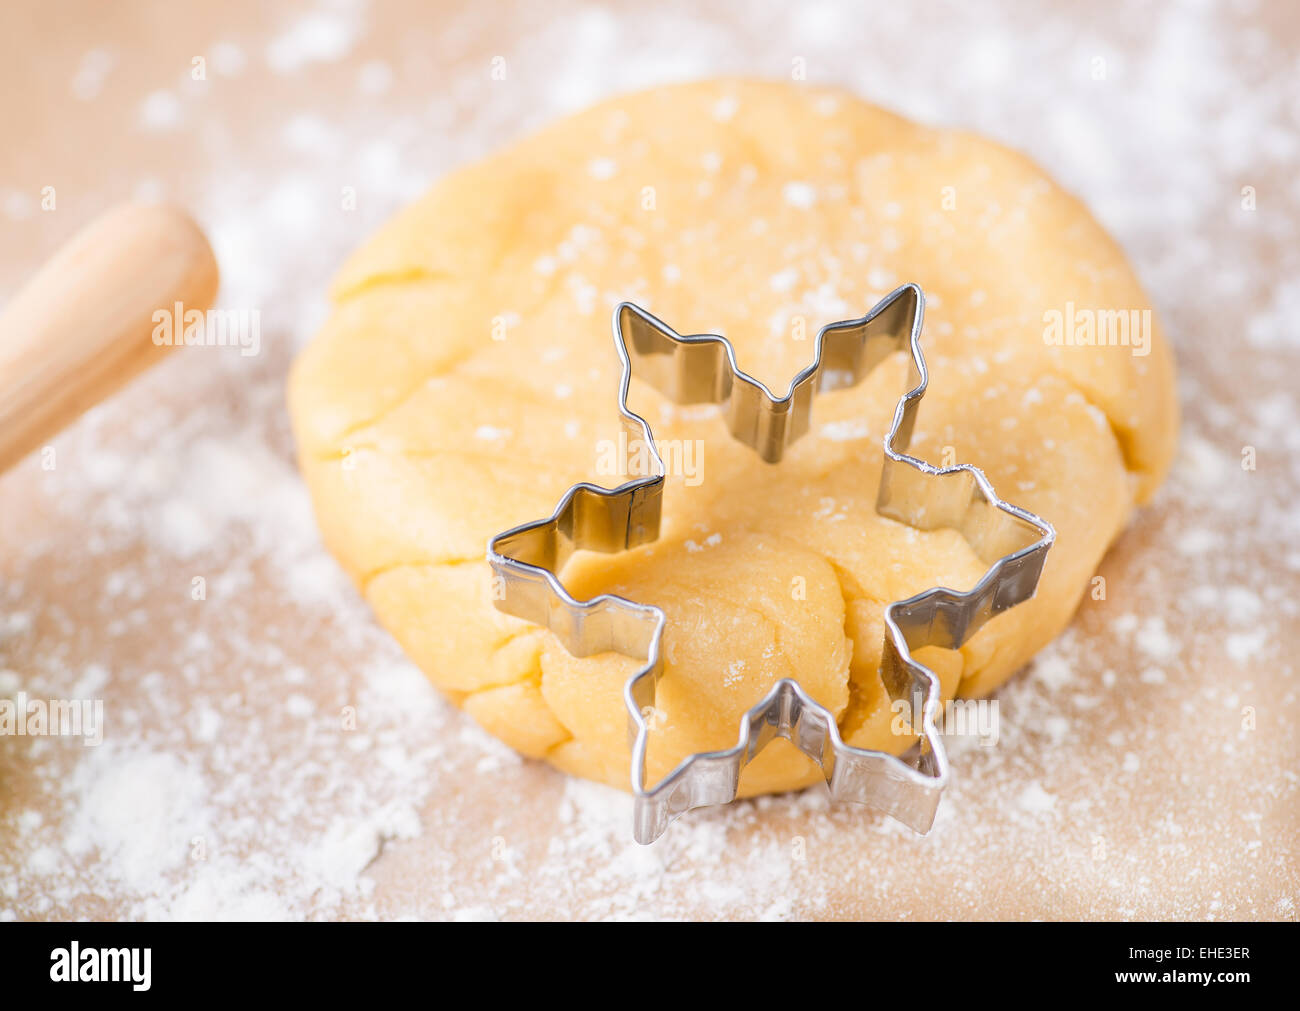 Shortcrust pastry dough with cookie cutter on a floured surface, selective focus - Stock Image